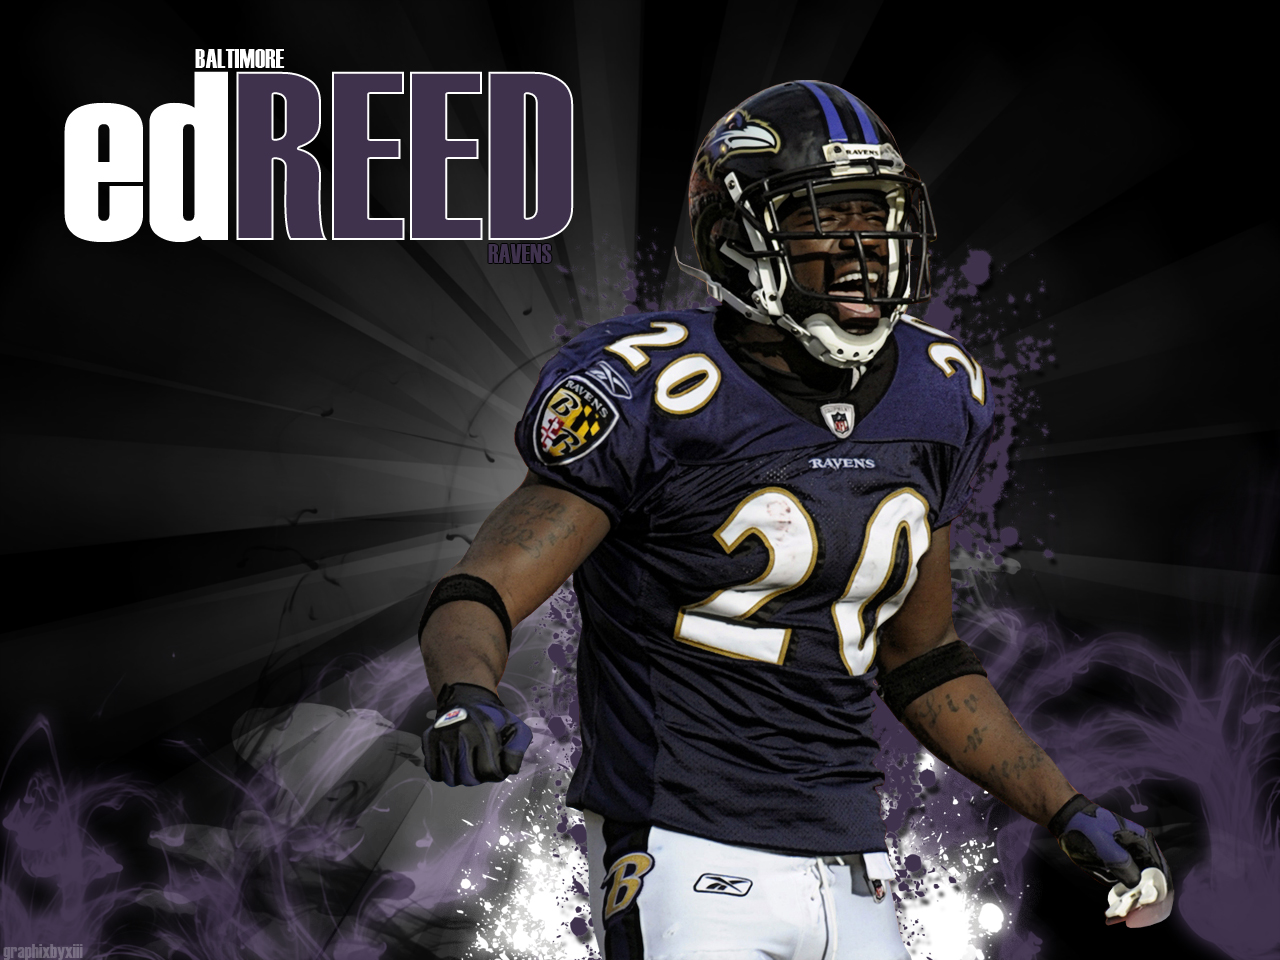 Baltimore Ravens HD desktop wallpaper Baltimore Ravens wallpapers 1280x960